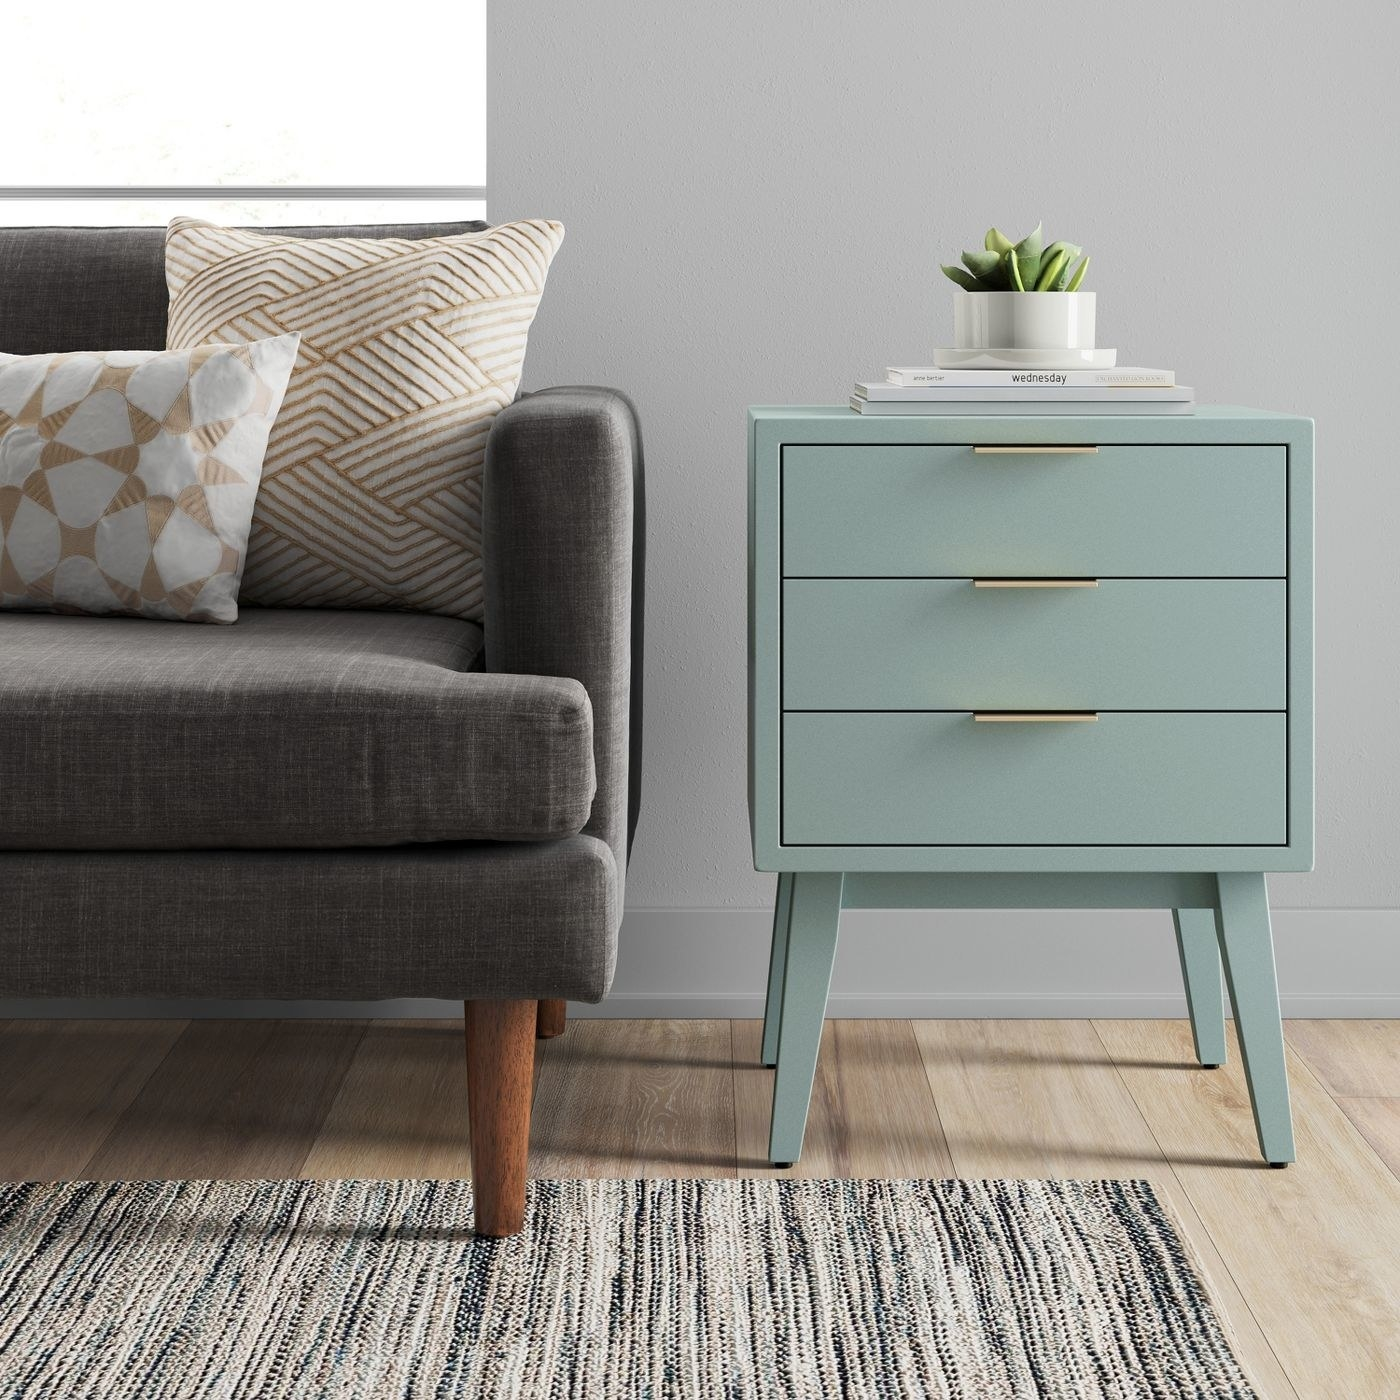 the light blue table with gold drawer handles